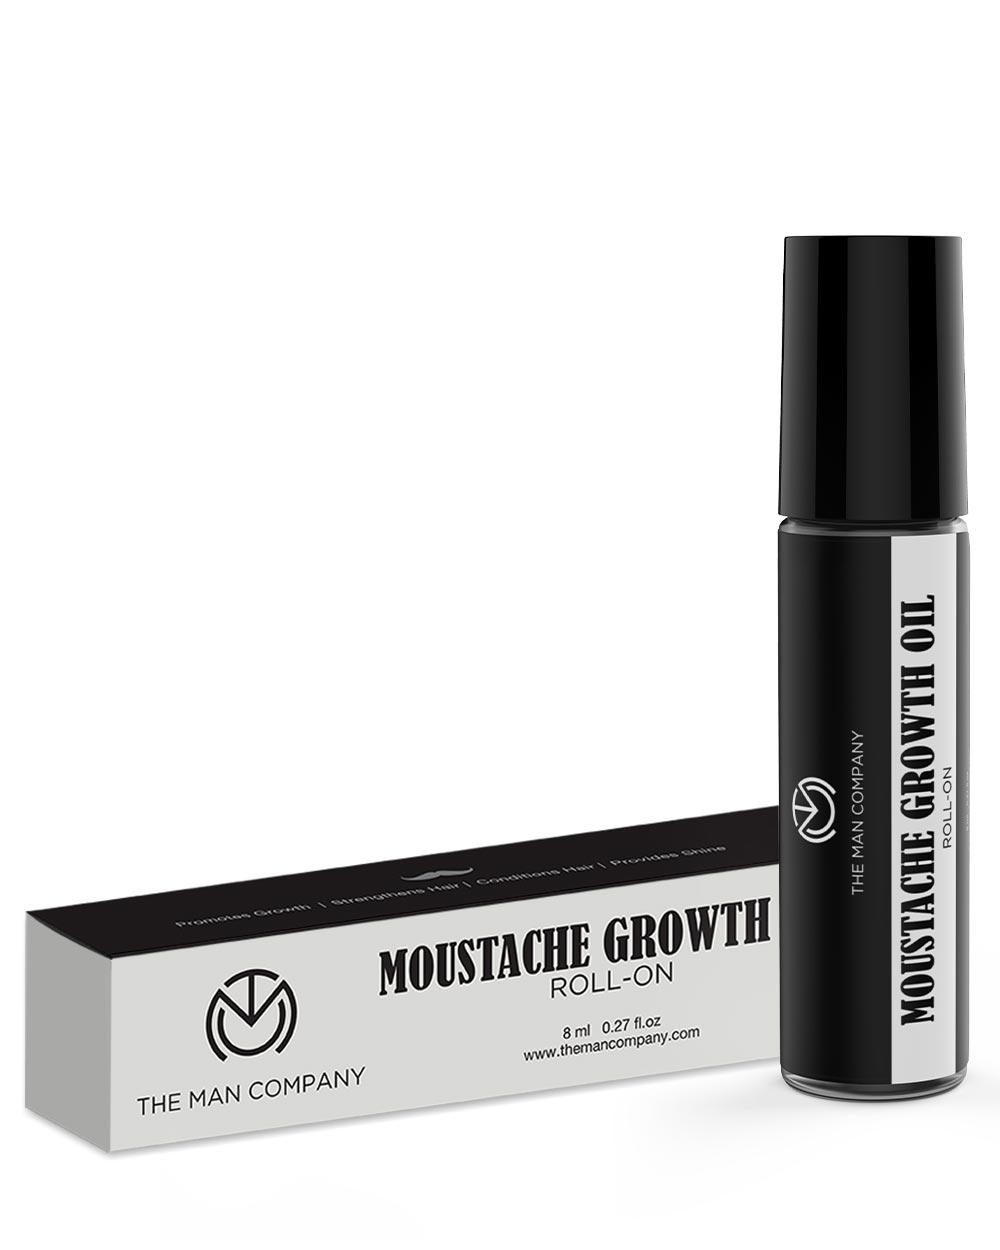 The Man Company Skin Brightening Cream + Mustache Growth Roll on